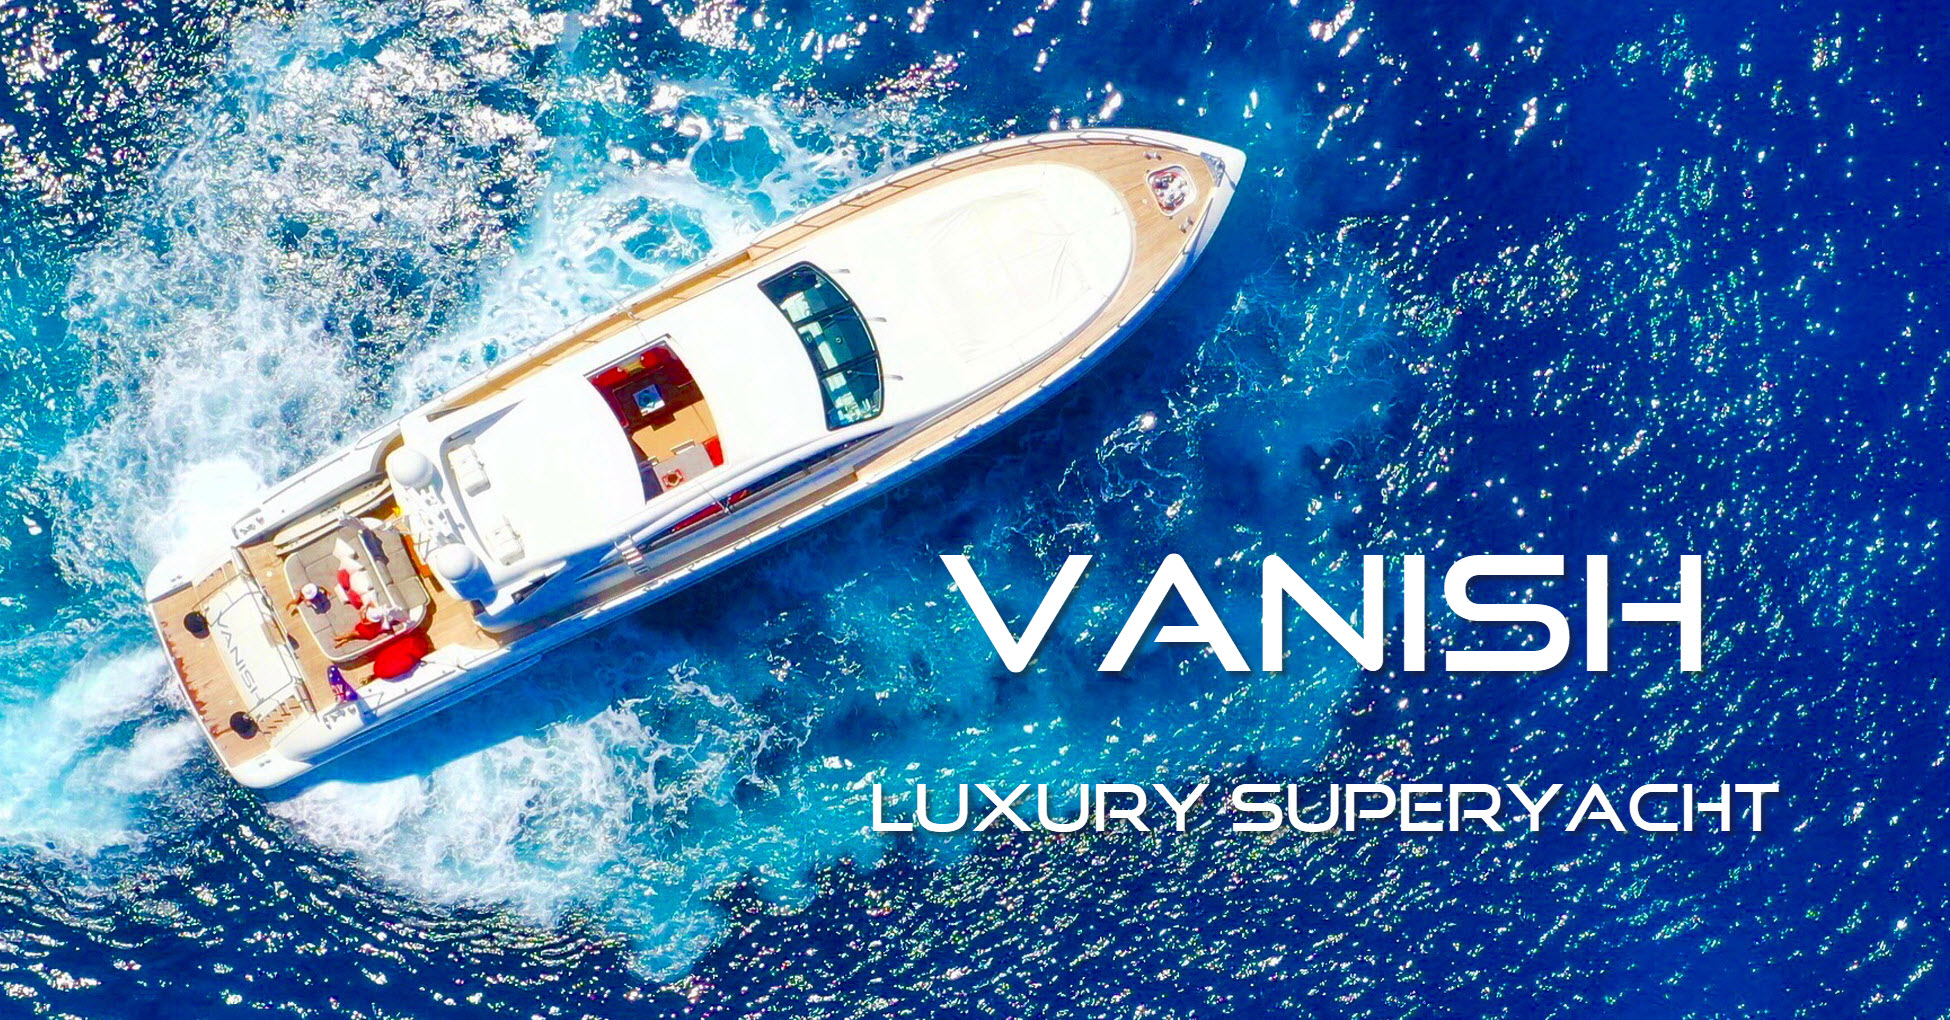 Vanish Superyacht luxury